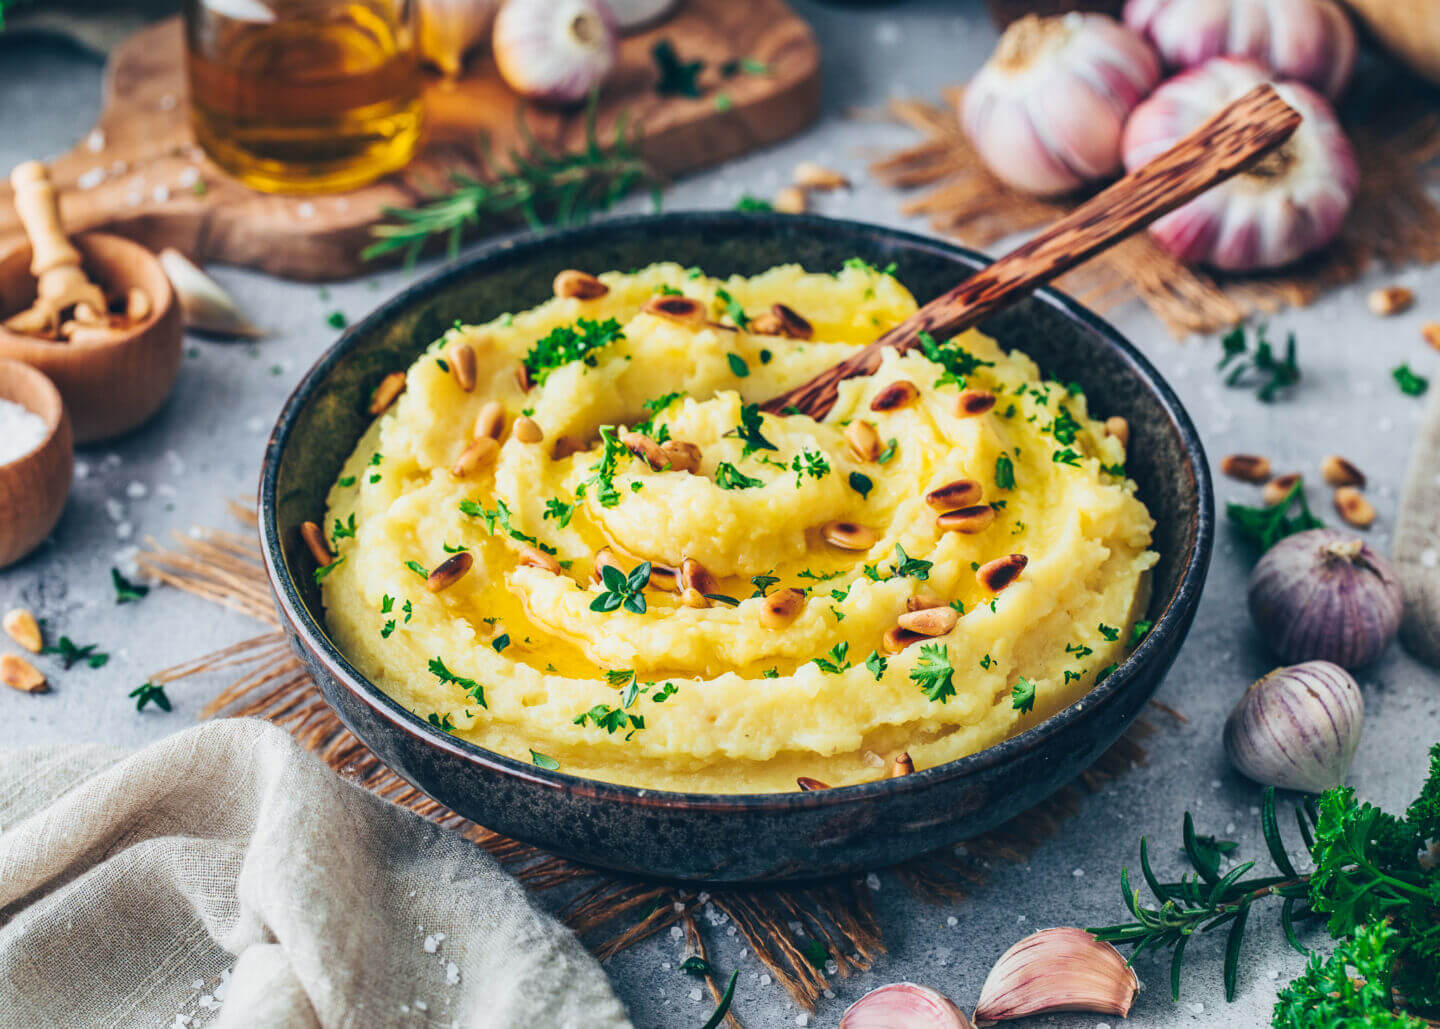 Vegan Mashed Potatoes with roasted garlic, parsley, thyme, olive oil, and pine nuts